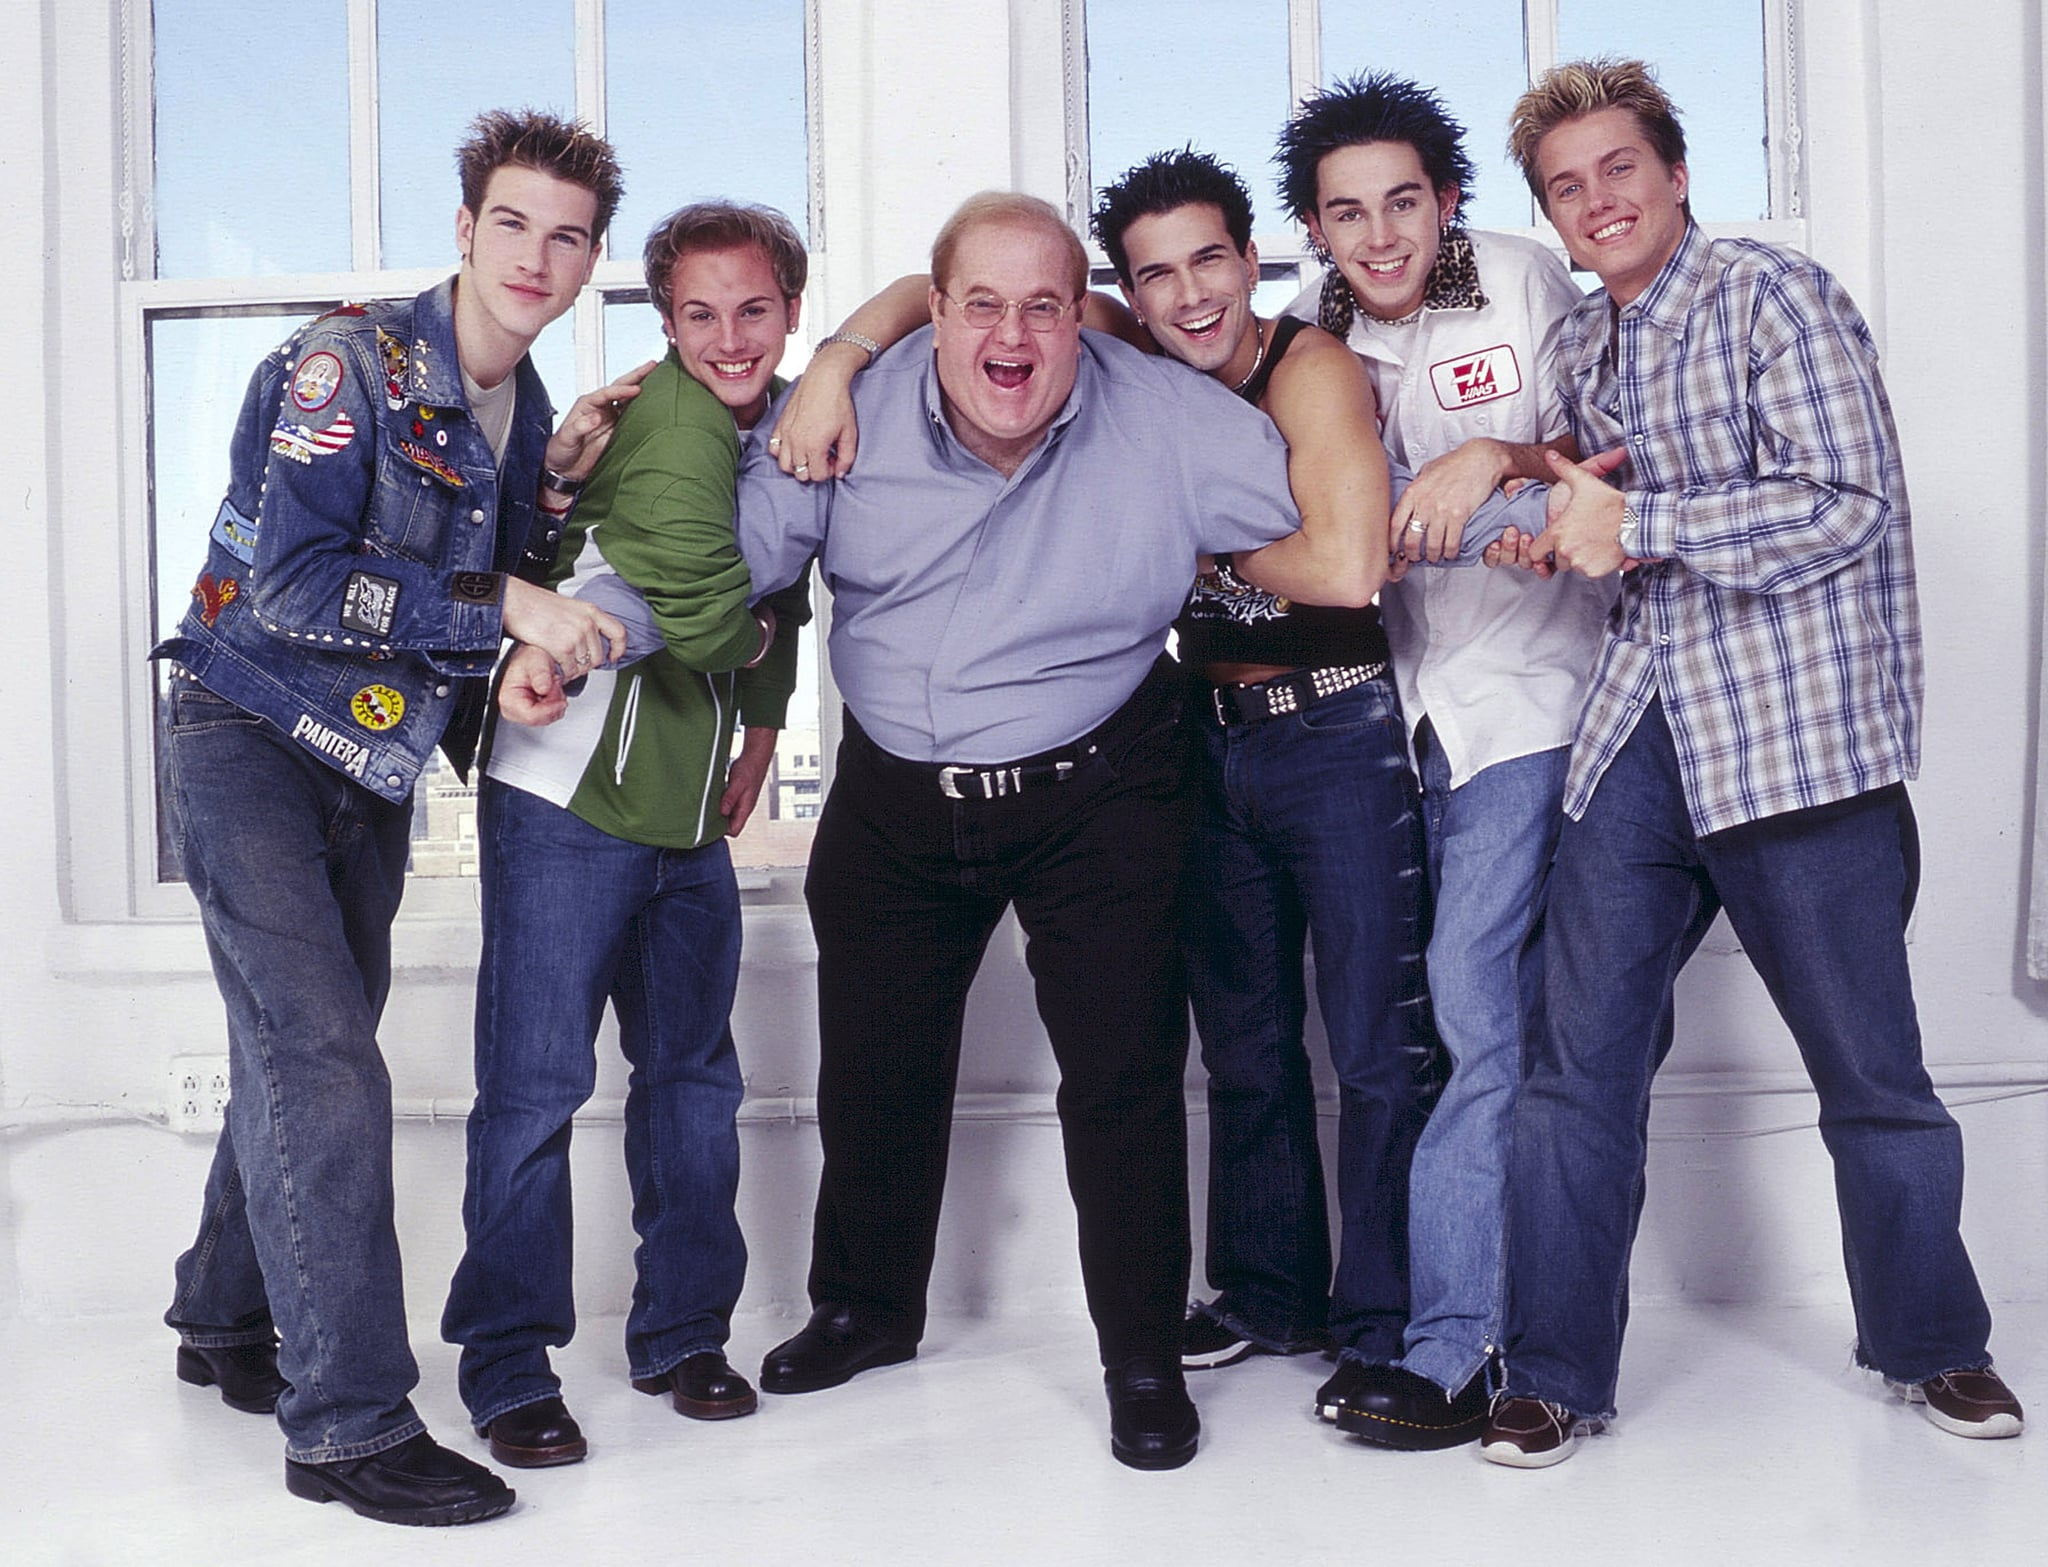 NEW YORK - CIRCA 2001: Lou Pearlman poses with boy band O-Town, Jacob Underwood, Ashley Parker Angel, Erik Estrada, Trevor Penick and Dan Miller seen in New York, circa 2001. (Photo by Mark Weiss/WireImage)